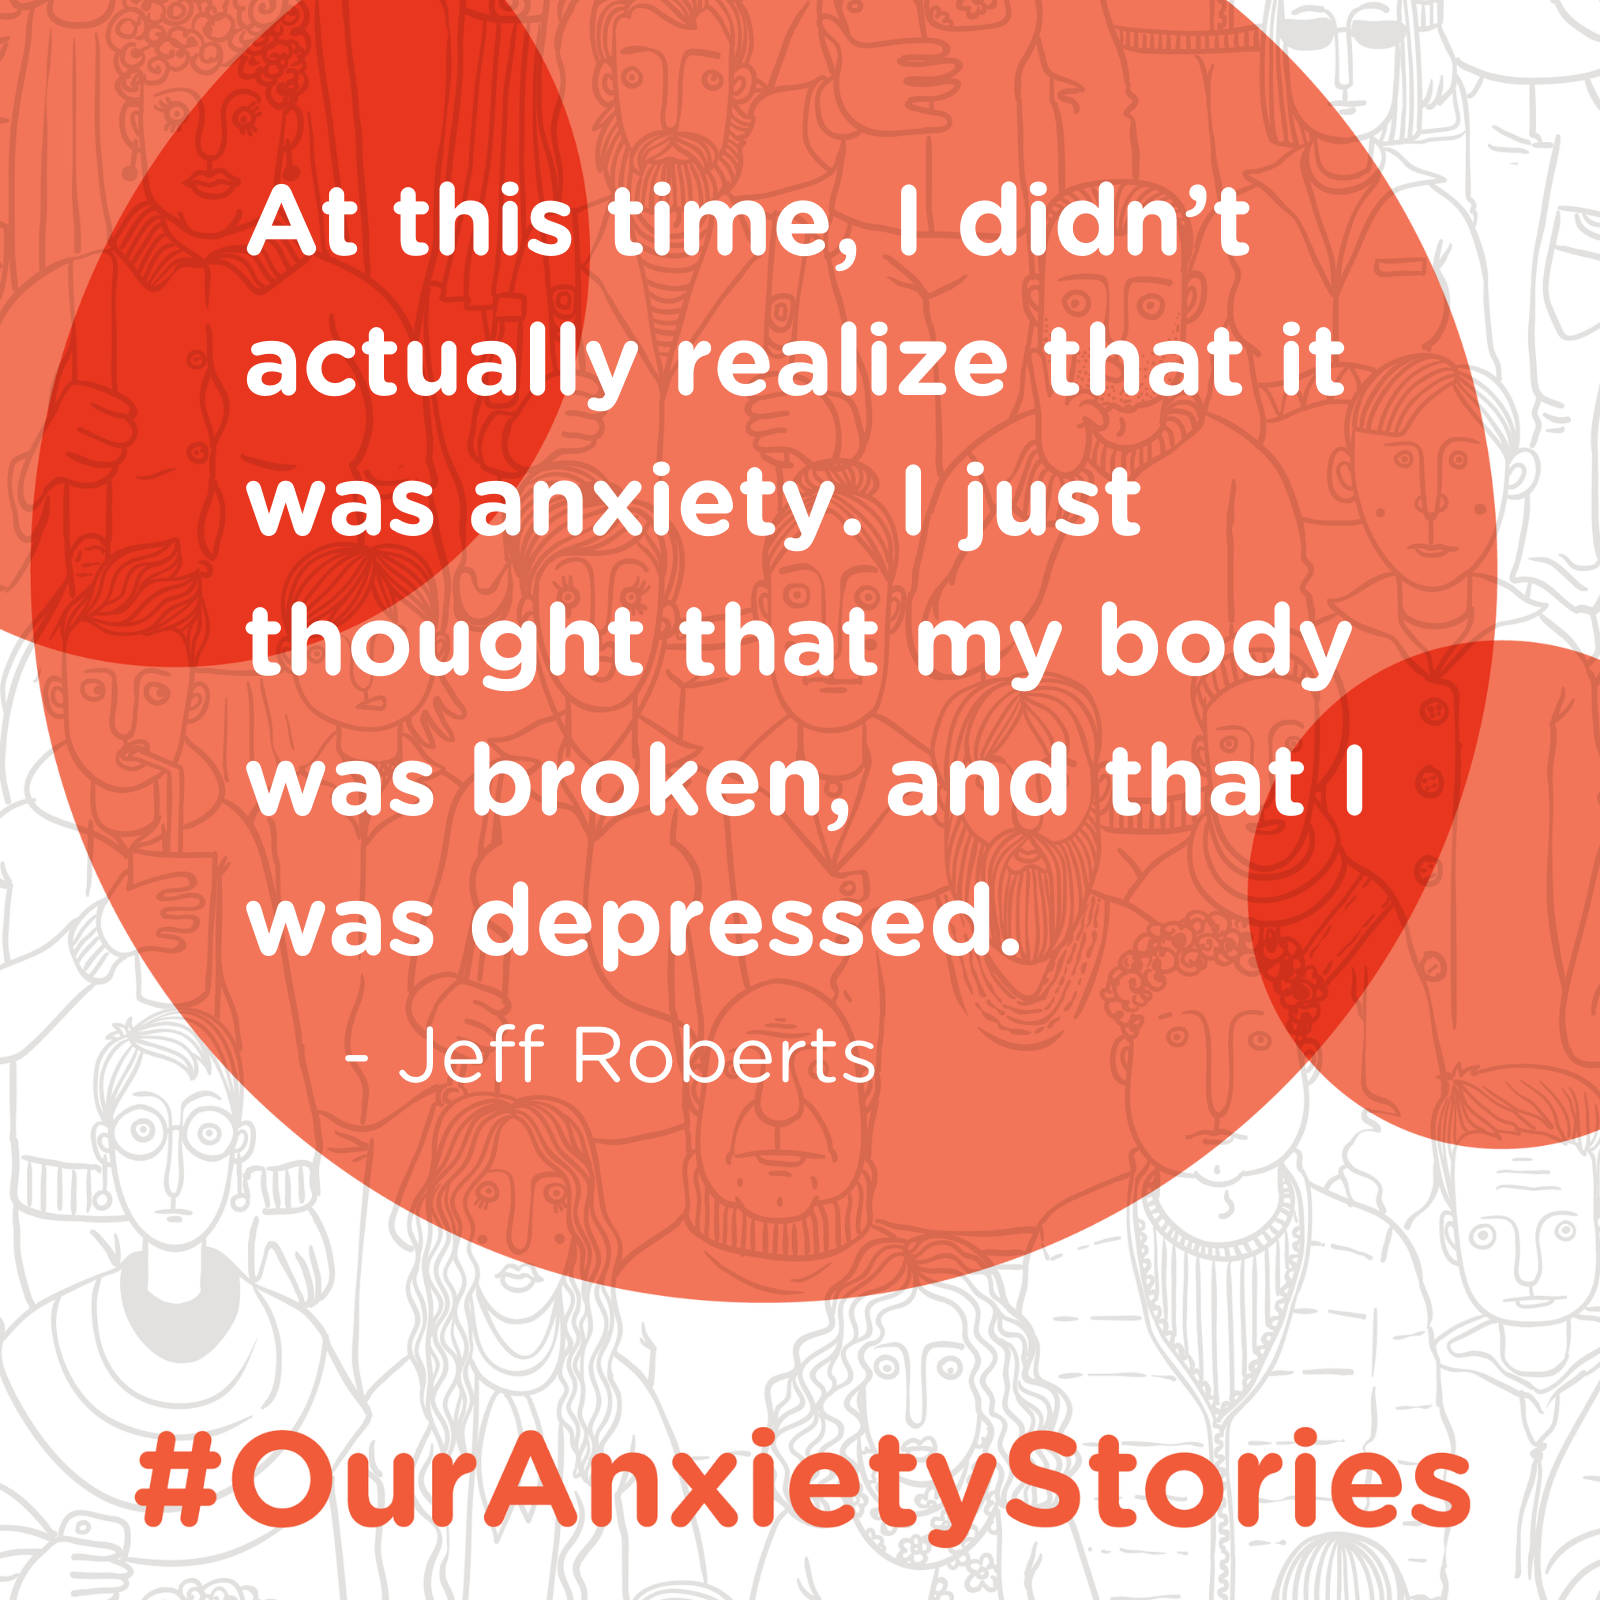 Cognitive Behavioural Therapy (CBT) Can Help with Jeff Roberts